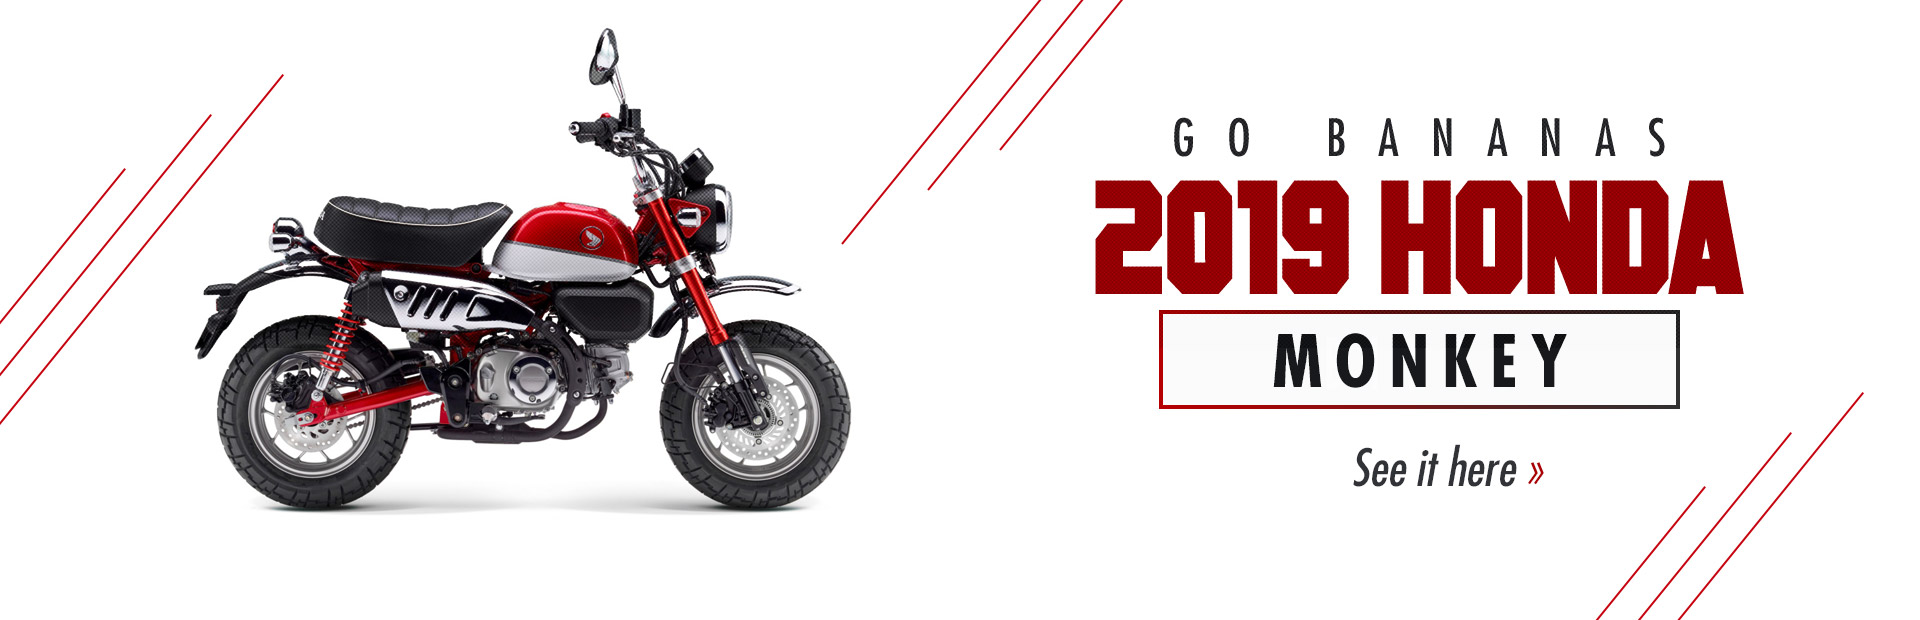 2019 Honda Monkey: Click here to view the model.